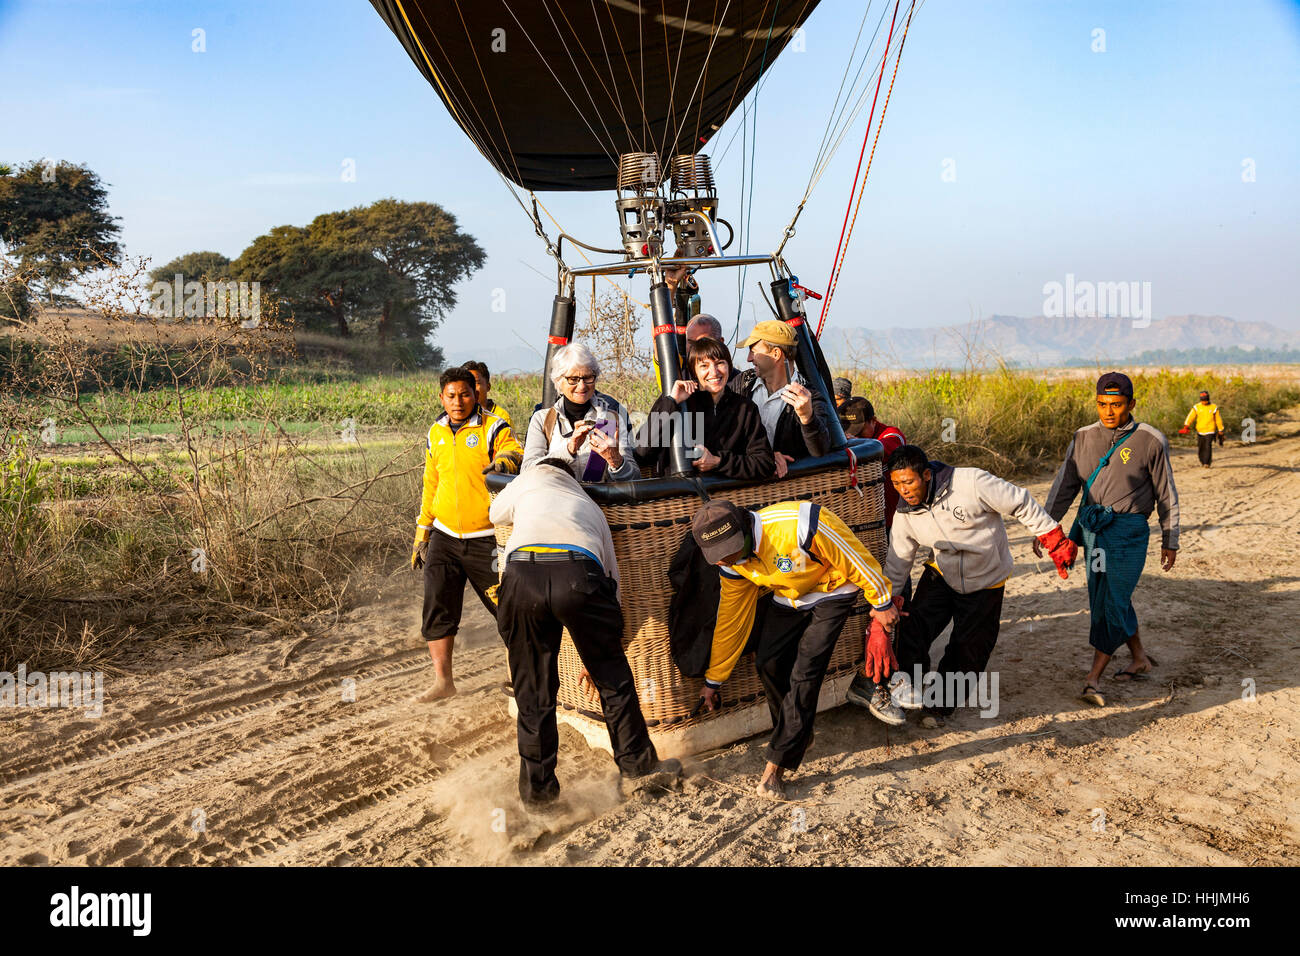 After landing, positioning of a balloon by the crew in a spot protected from the wind and prickly shrubs (Old Bagan - Myanmar). Stock Photo